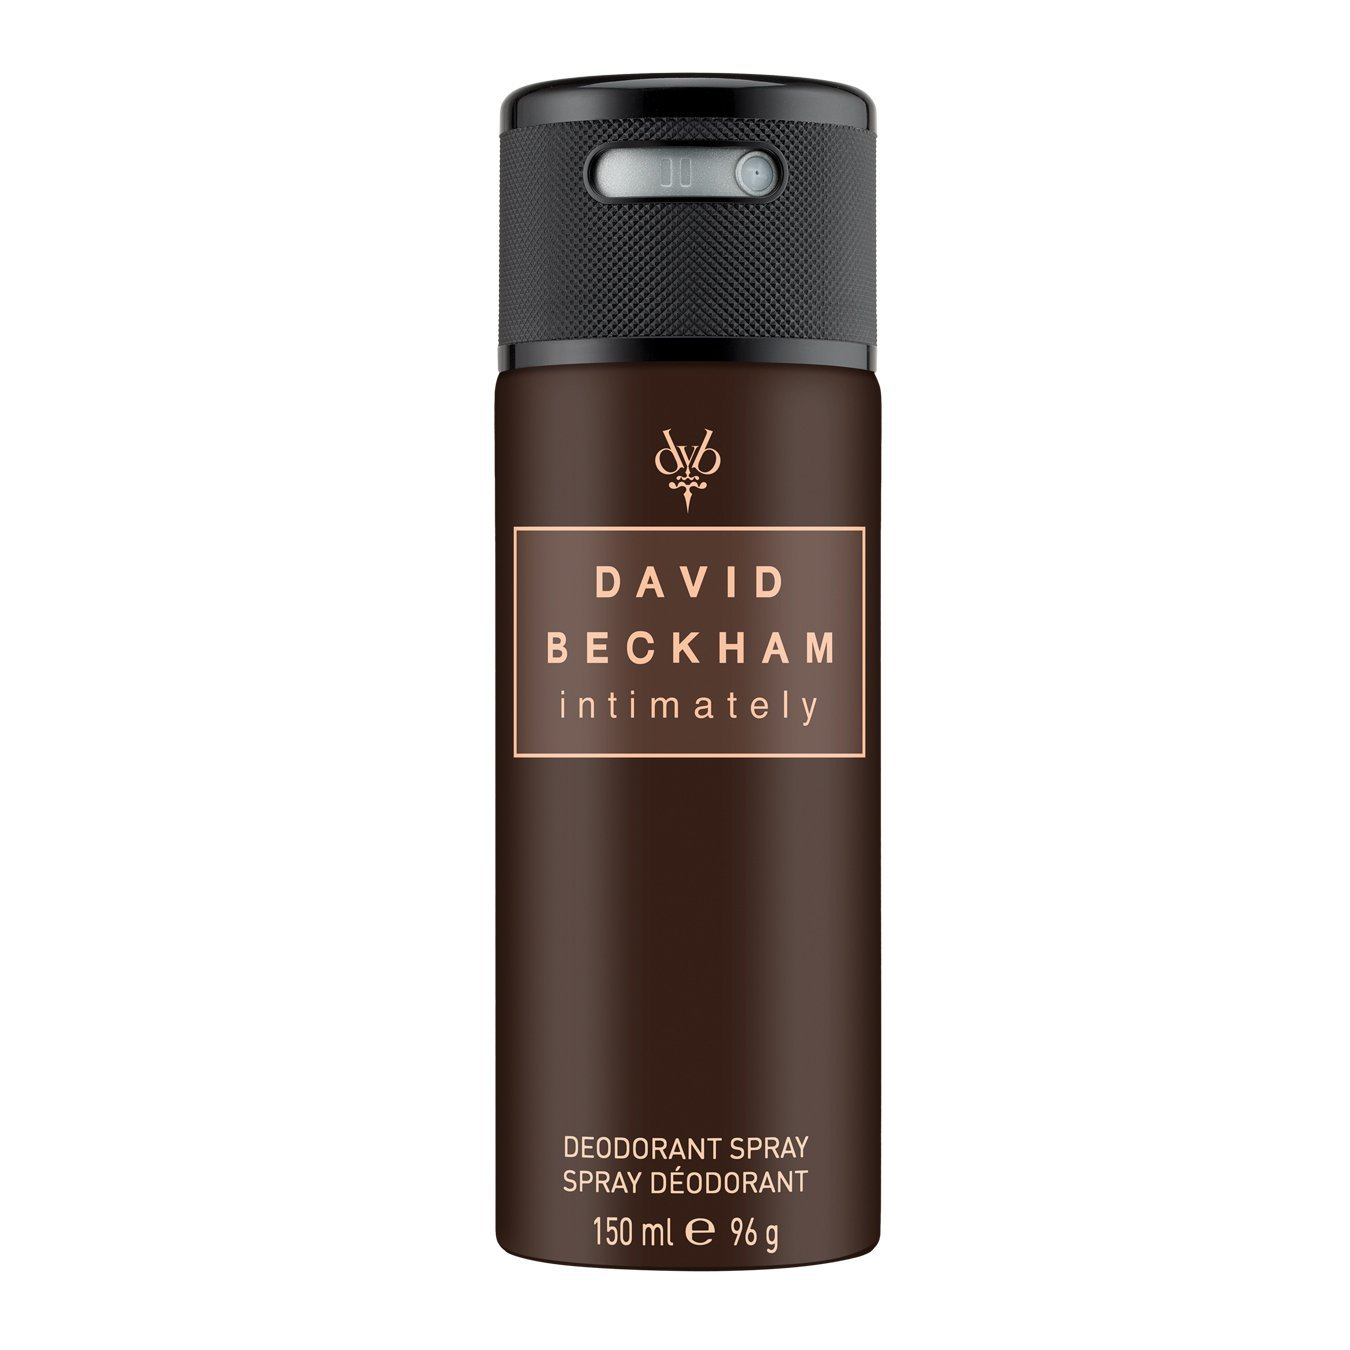 David Beckham Intimately Body Spray for Men, 150ml